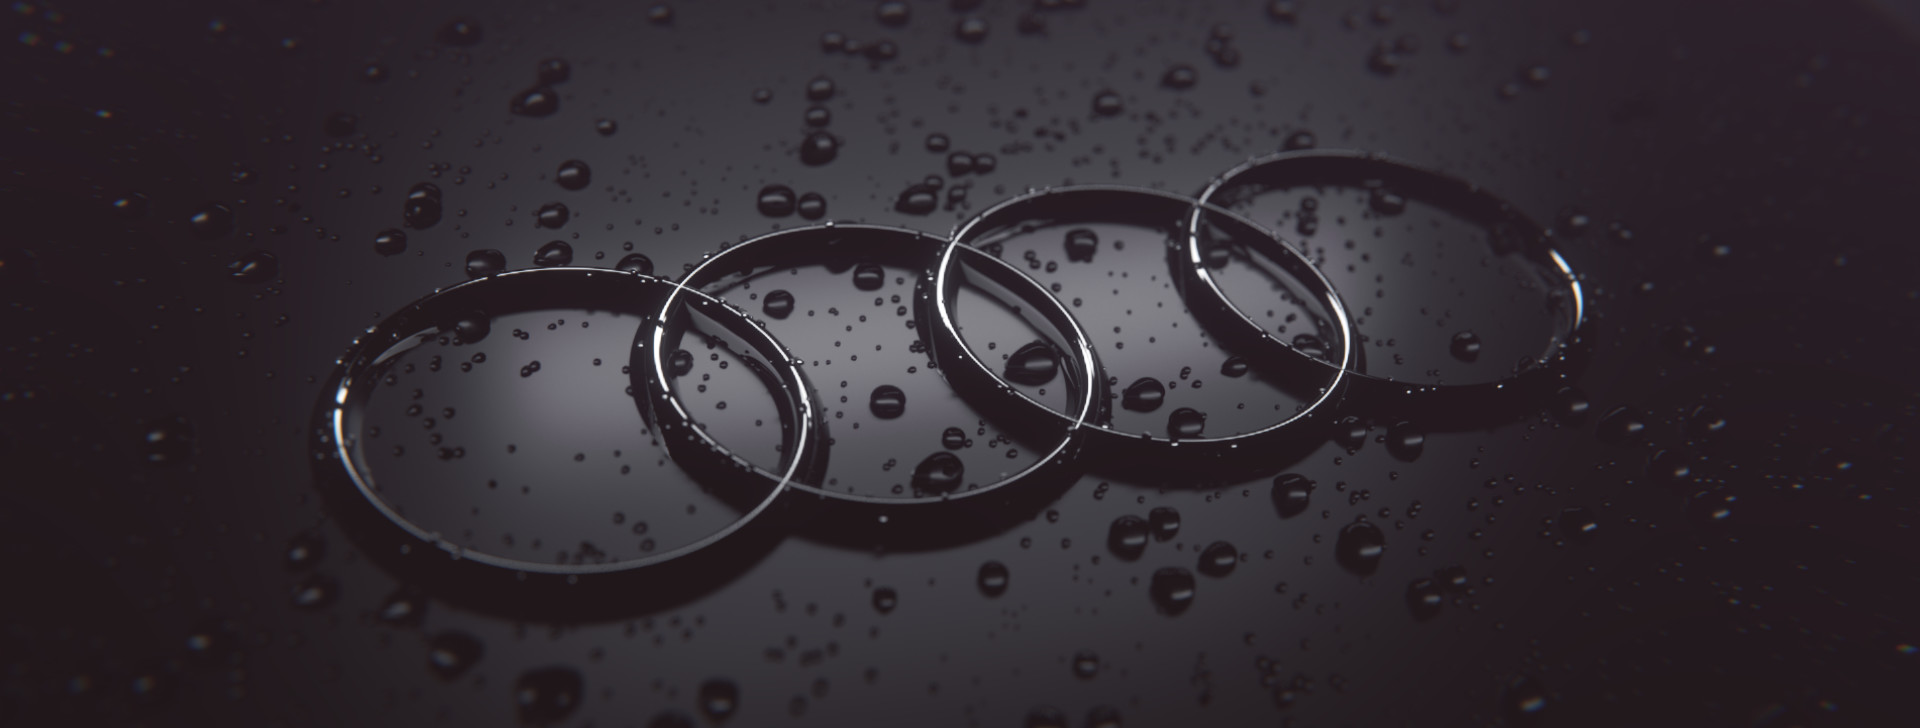 Jay Tailor Audi Logo With Water Drops